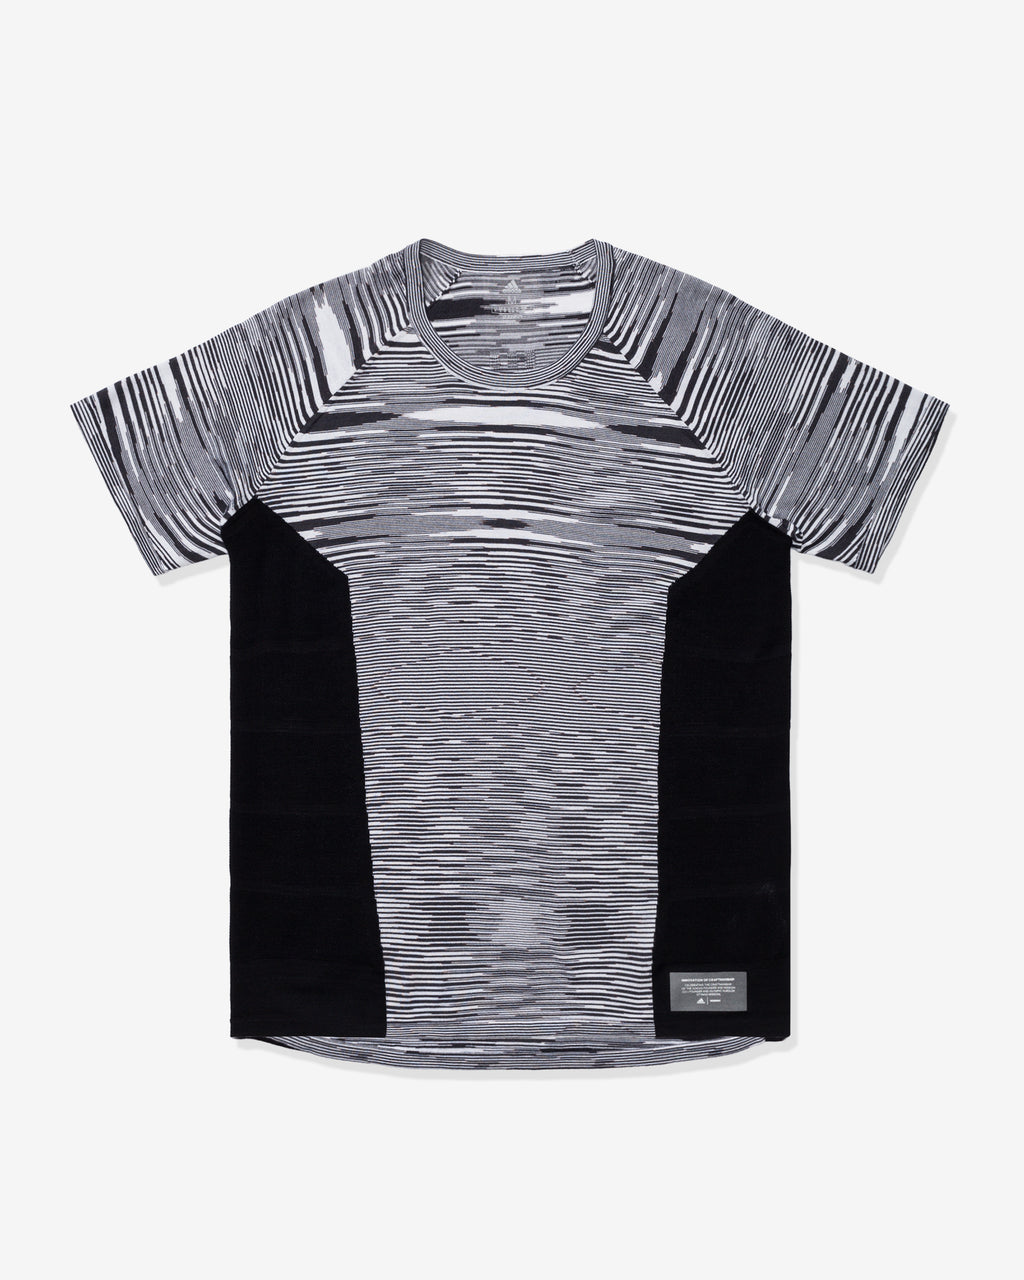 ADIDAS X MISSONI SUPERNOVA TEE - BLACK/DARKGREY/WHITE